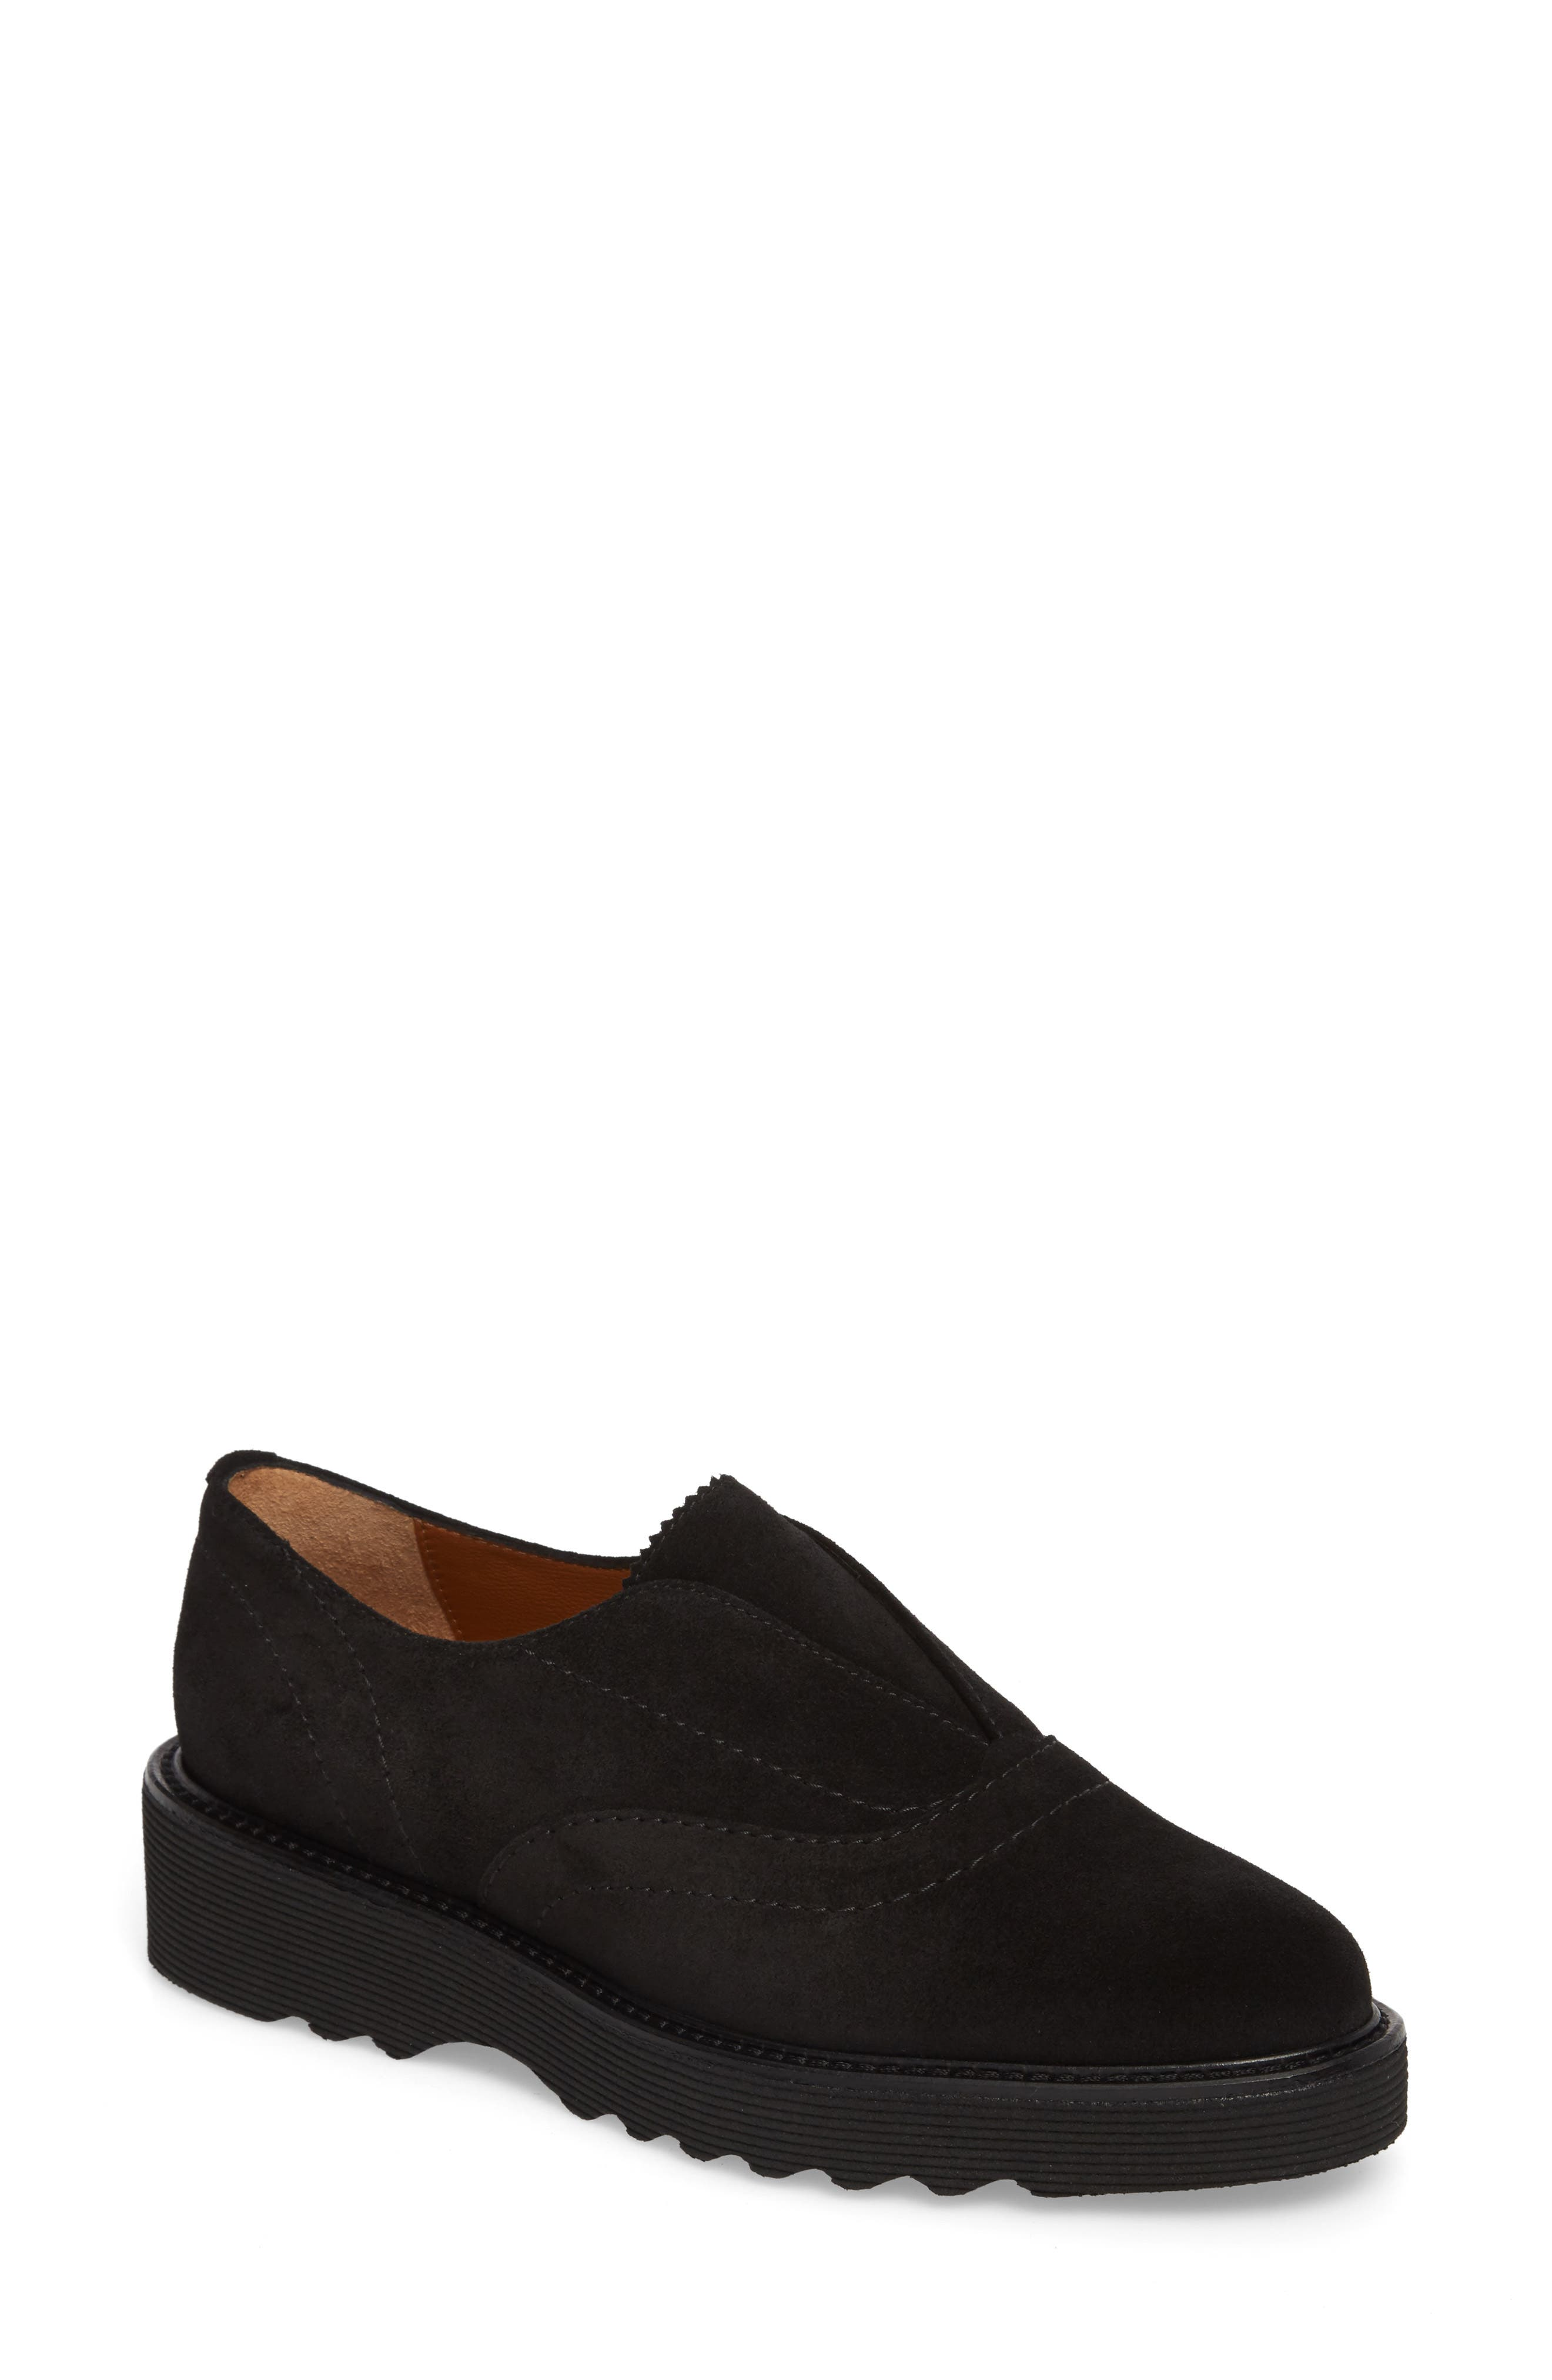 Kaleigh Weatherproof Loafer,                             Main thumbnail 1, color,